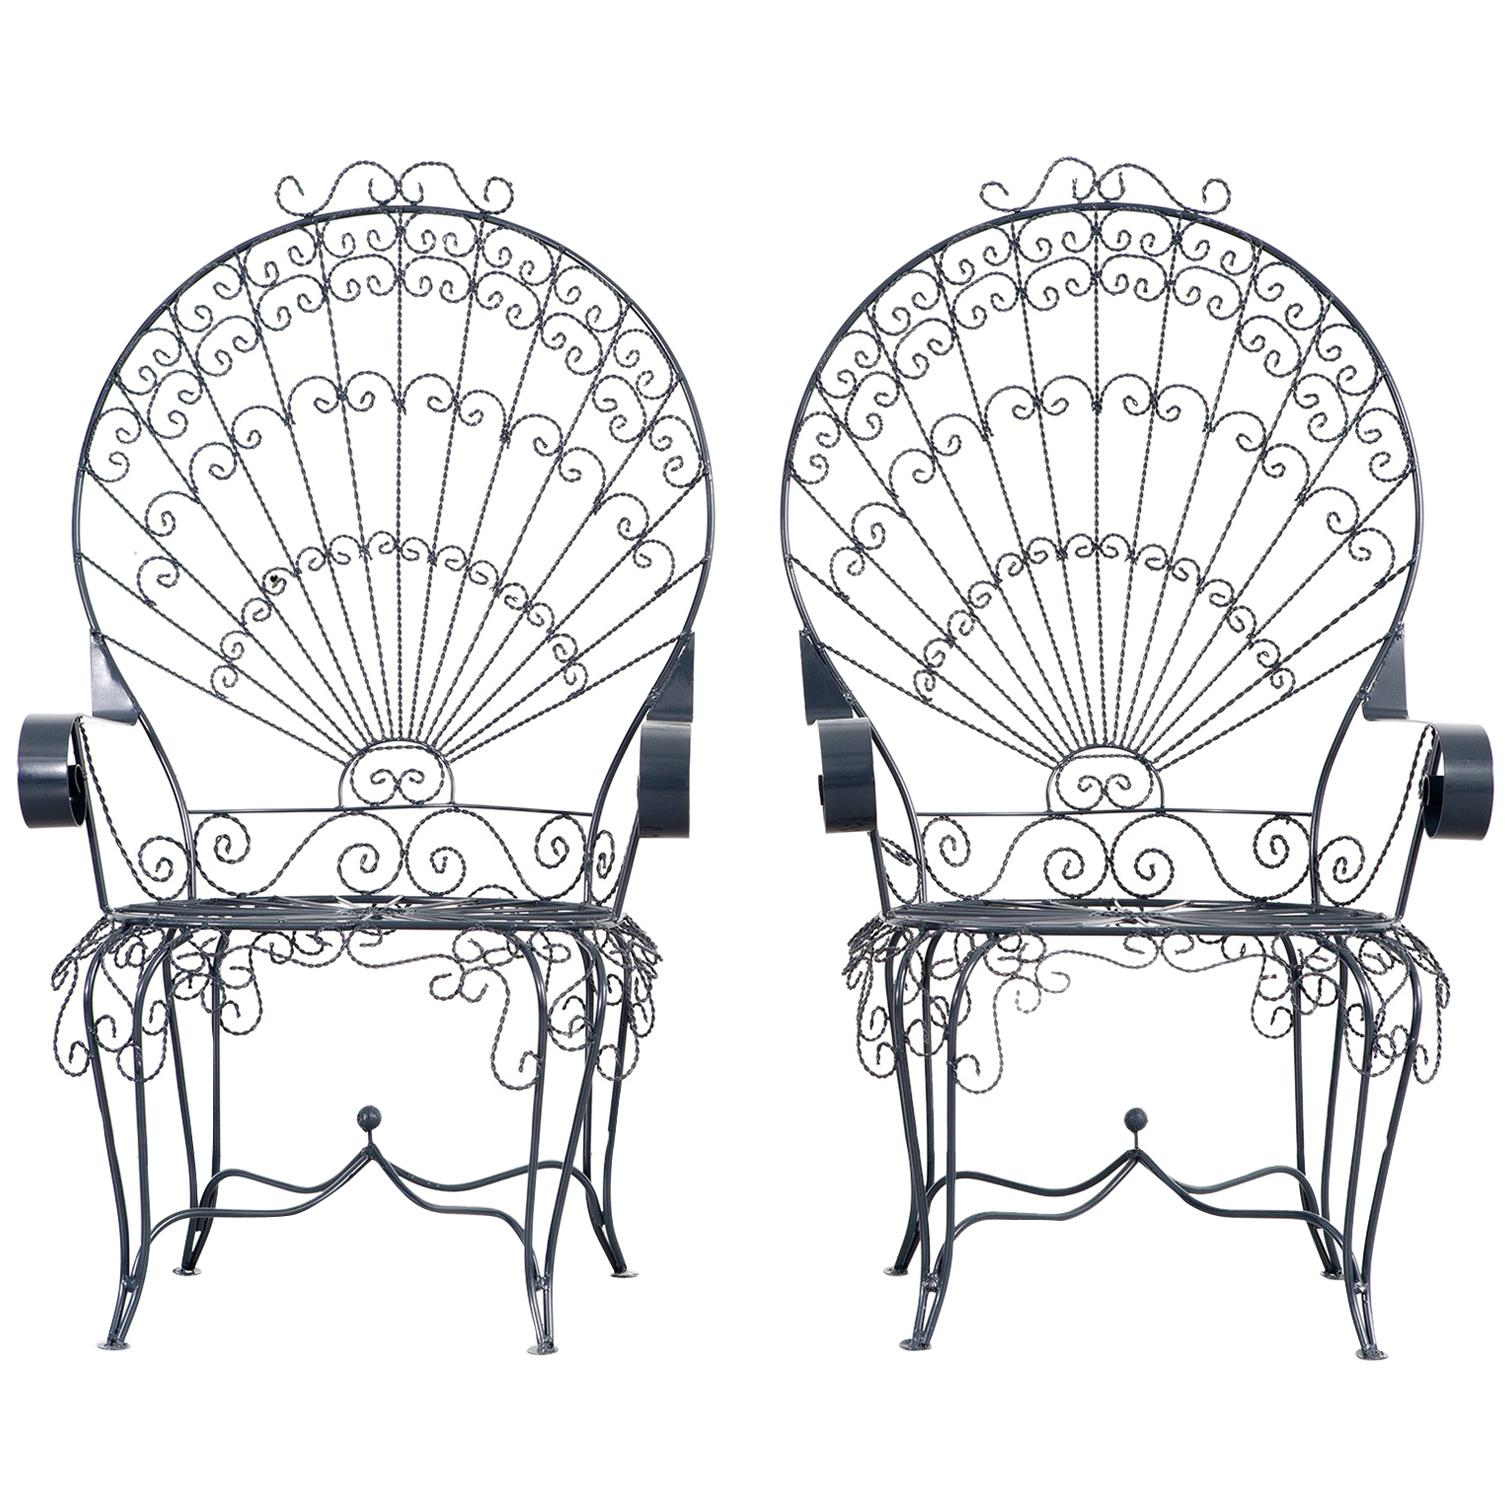 1930s patio and garden furniture 84 for sale at 1stdibs 1920s Art Deco Empire State Building